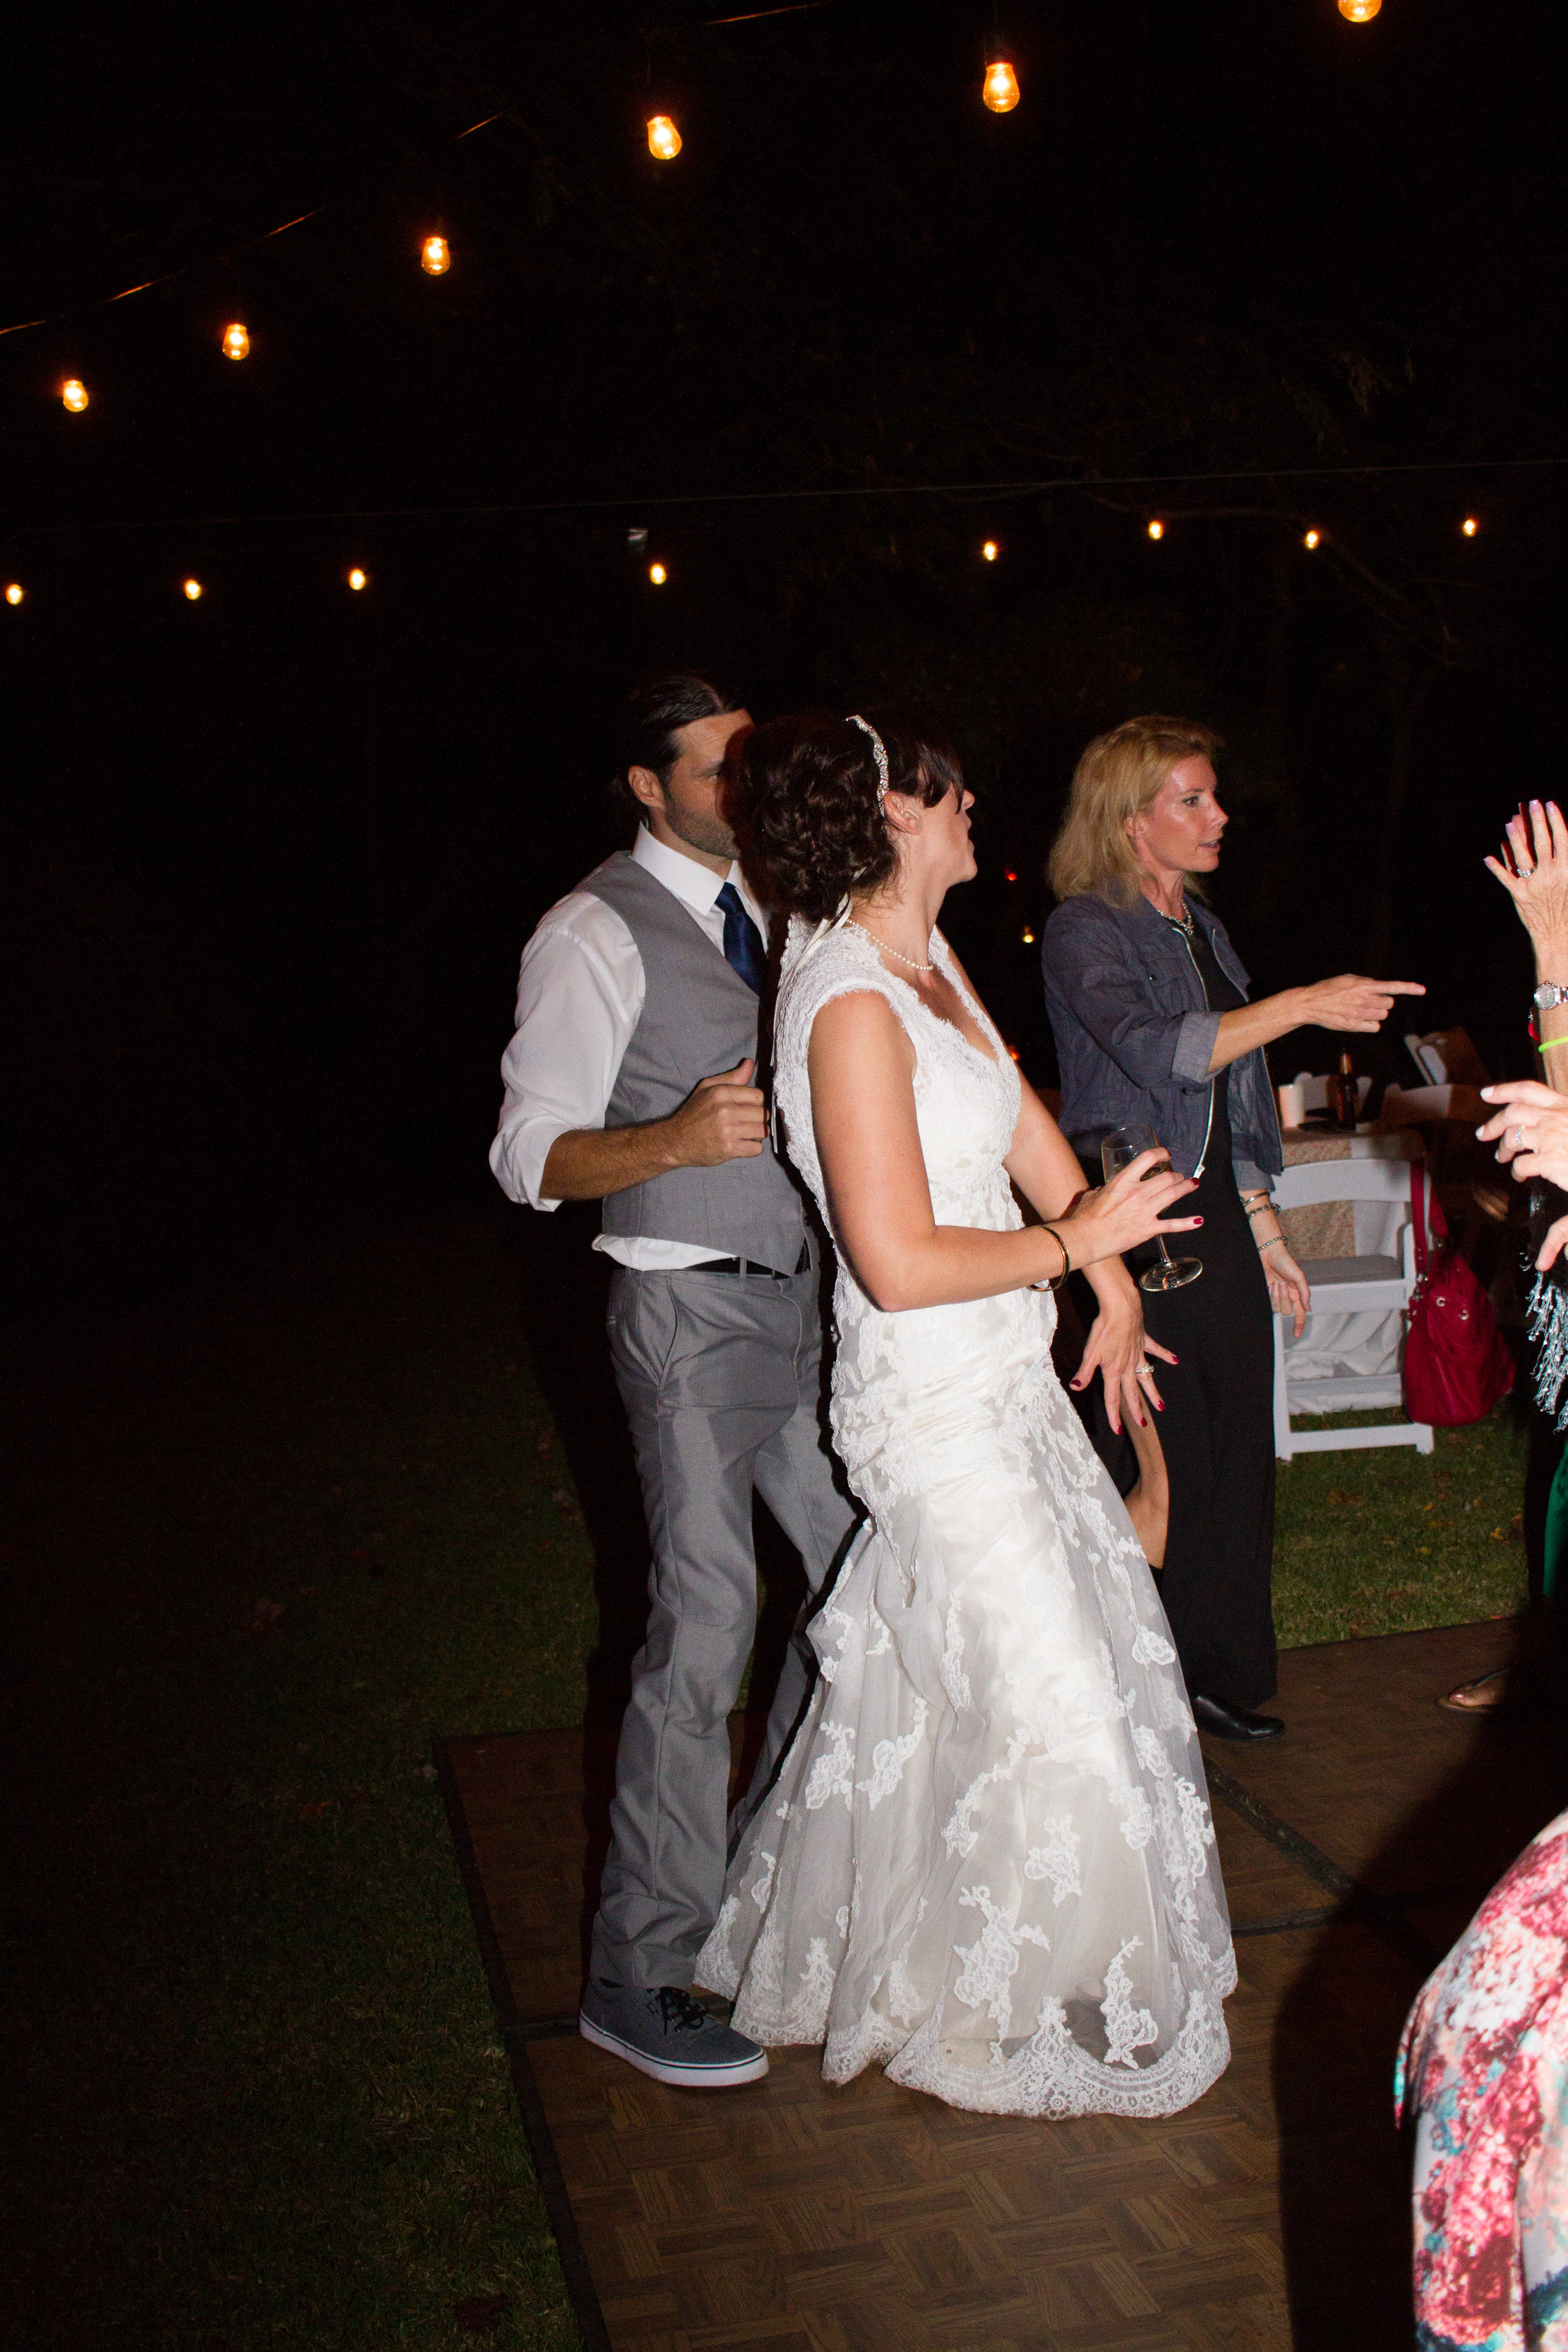 Jacqueline and Shawn Wedding (556 of 597).jpg